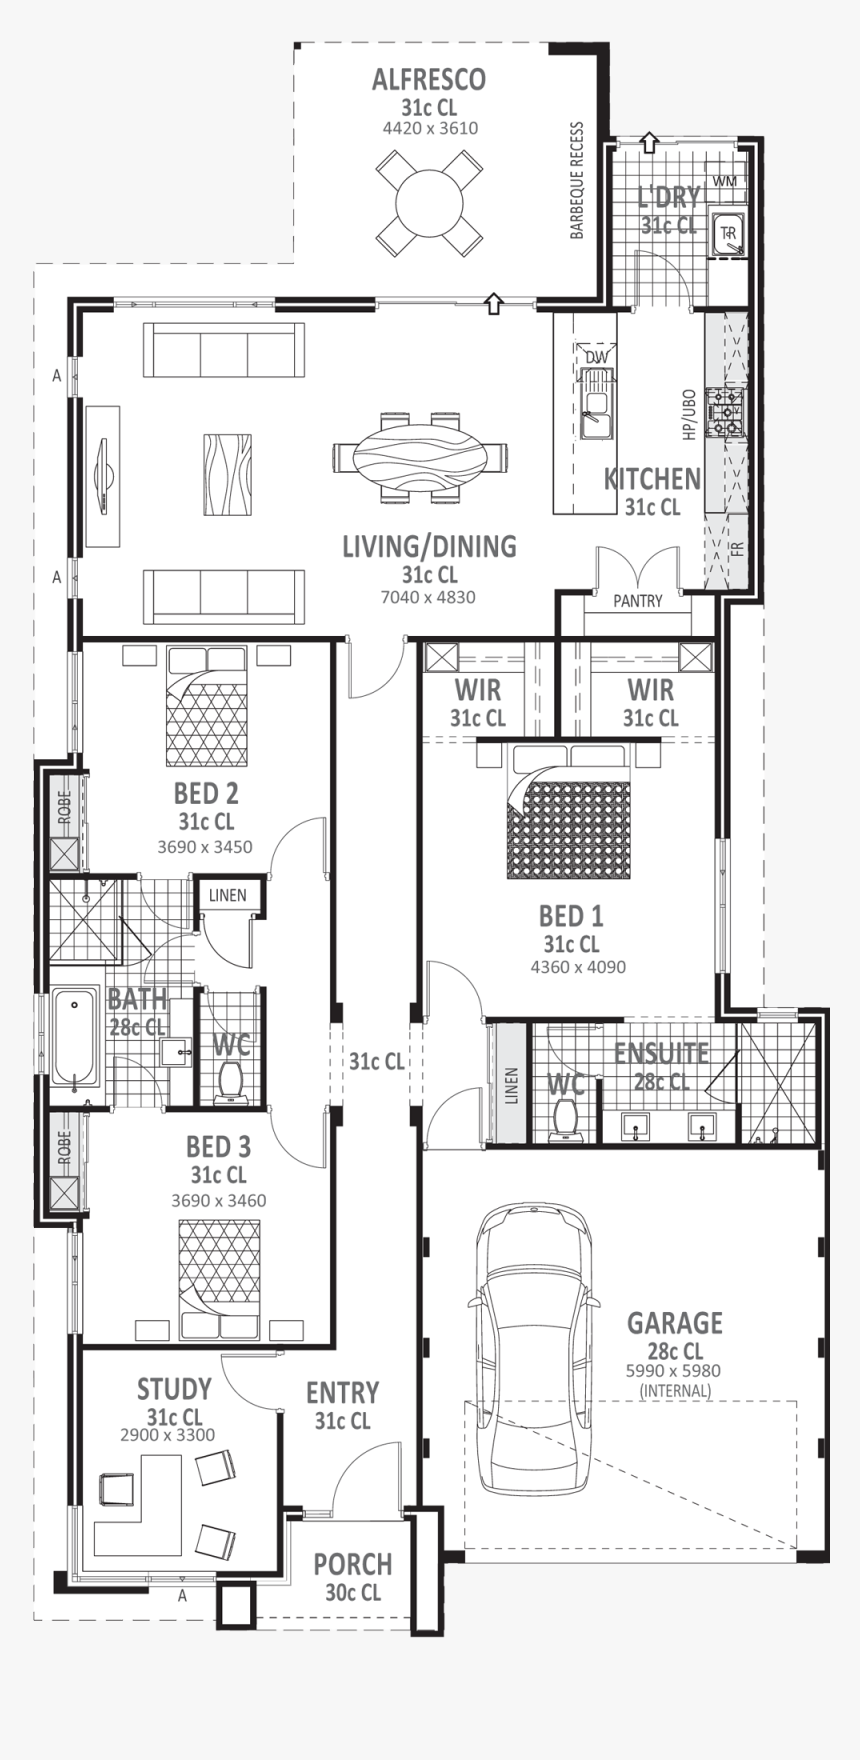 Floor Plans Png - 3 Bed House Plan, Transparent Png - kindpng